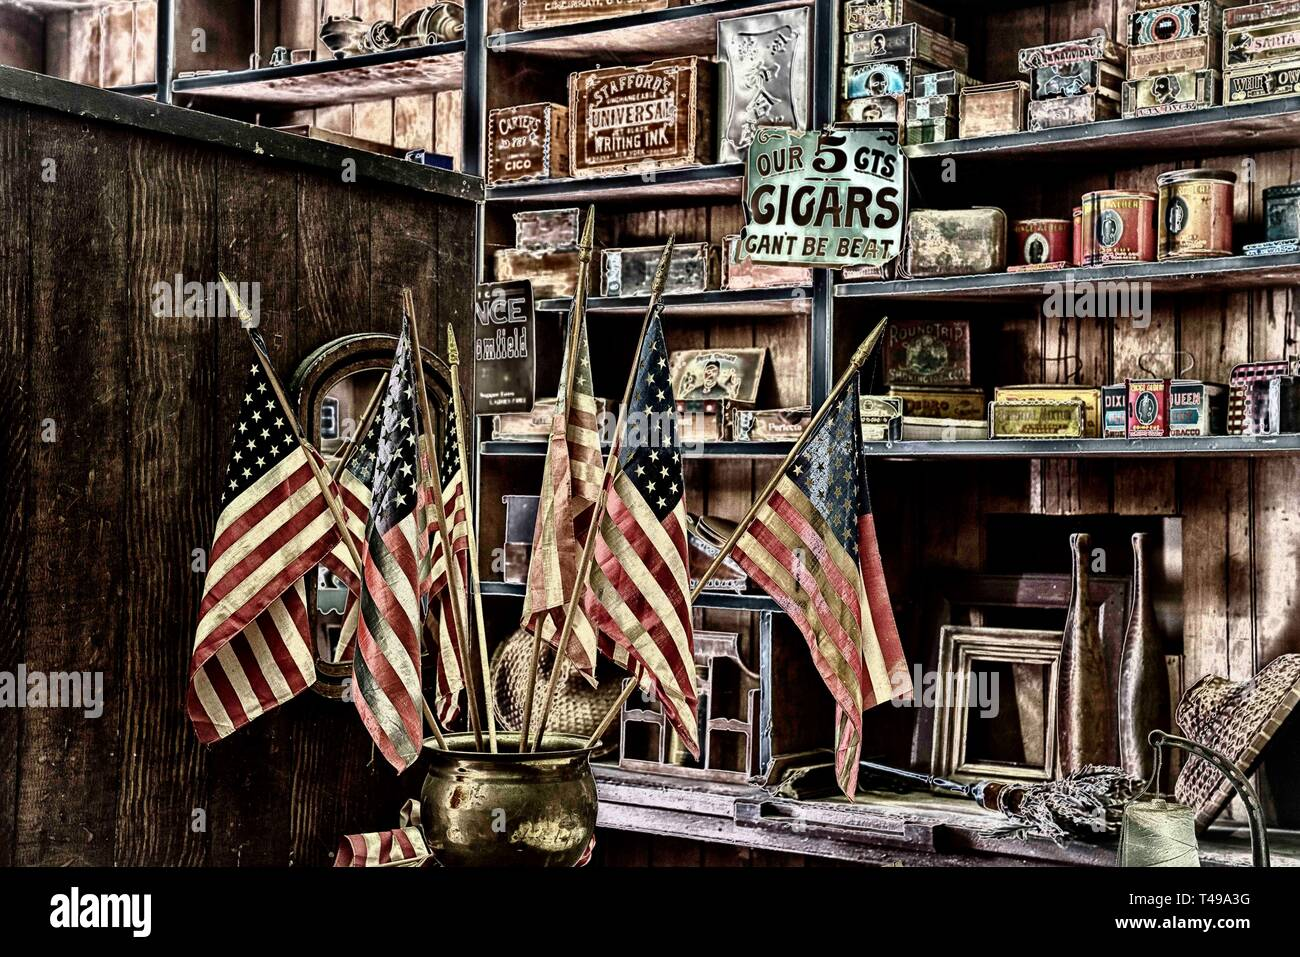 Malakoff General Store Stock Photo